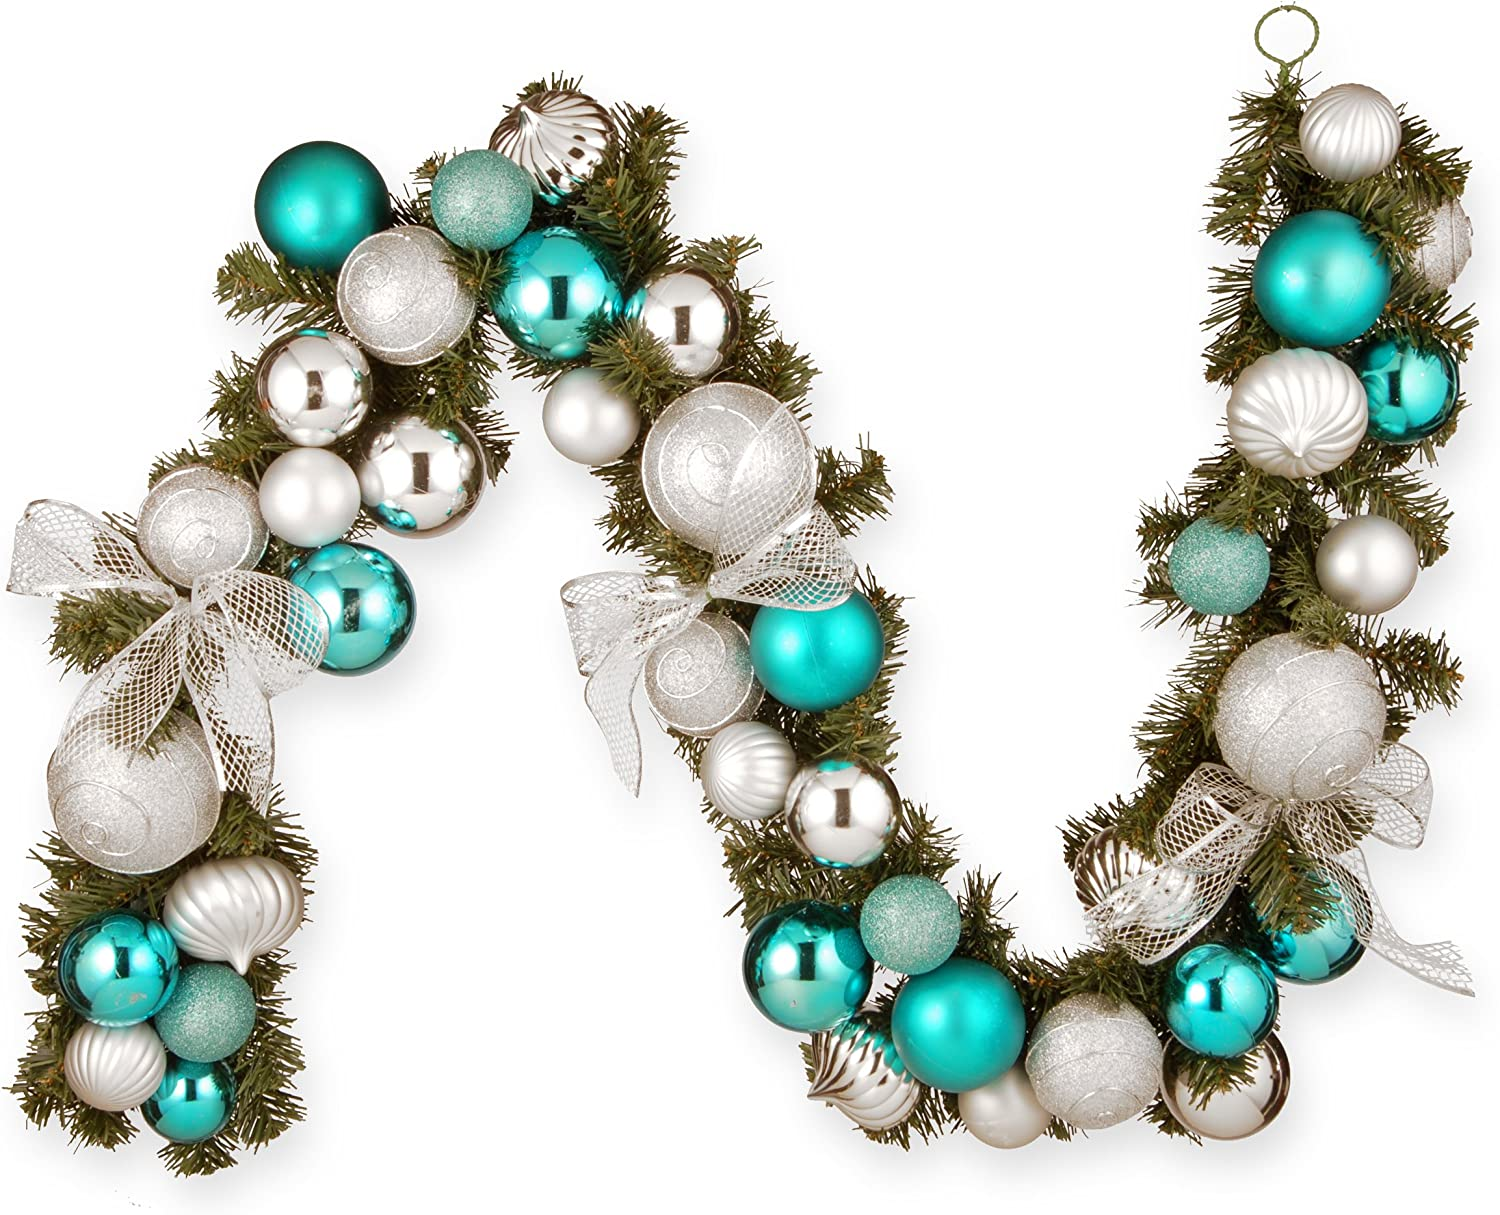 National Tree 6 Foot Silver and Blue Mixed Ornament Garland (RAC-16004)